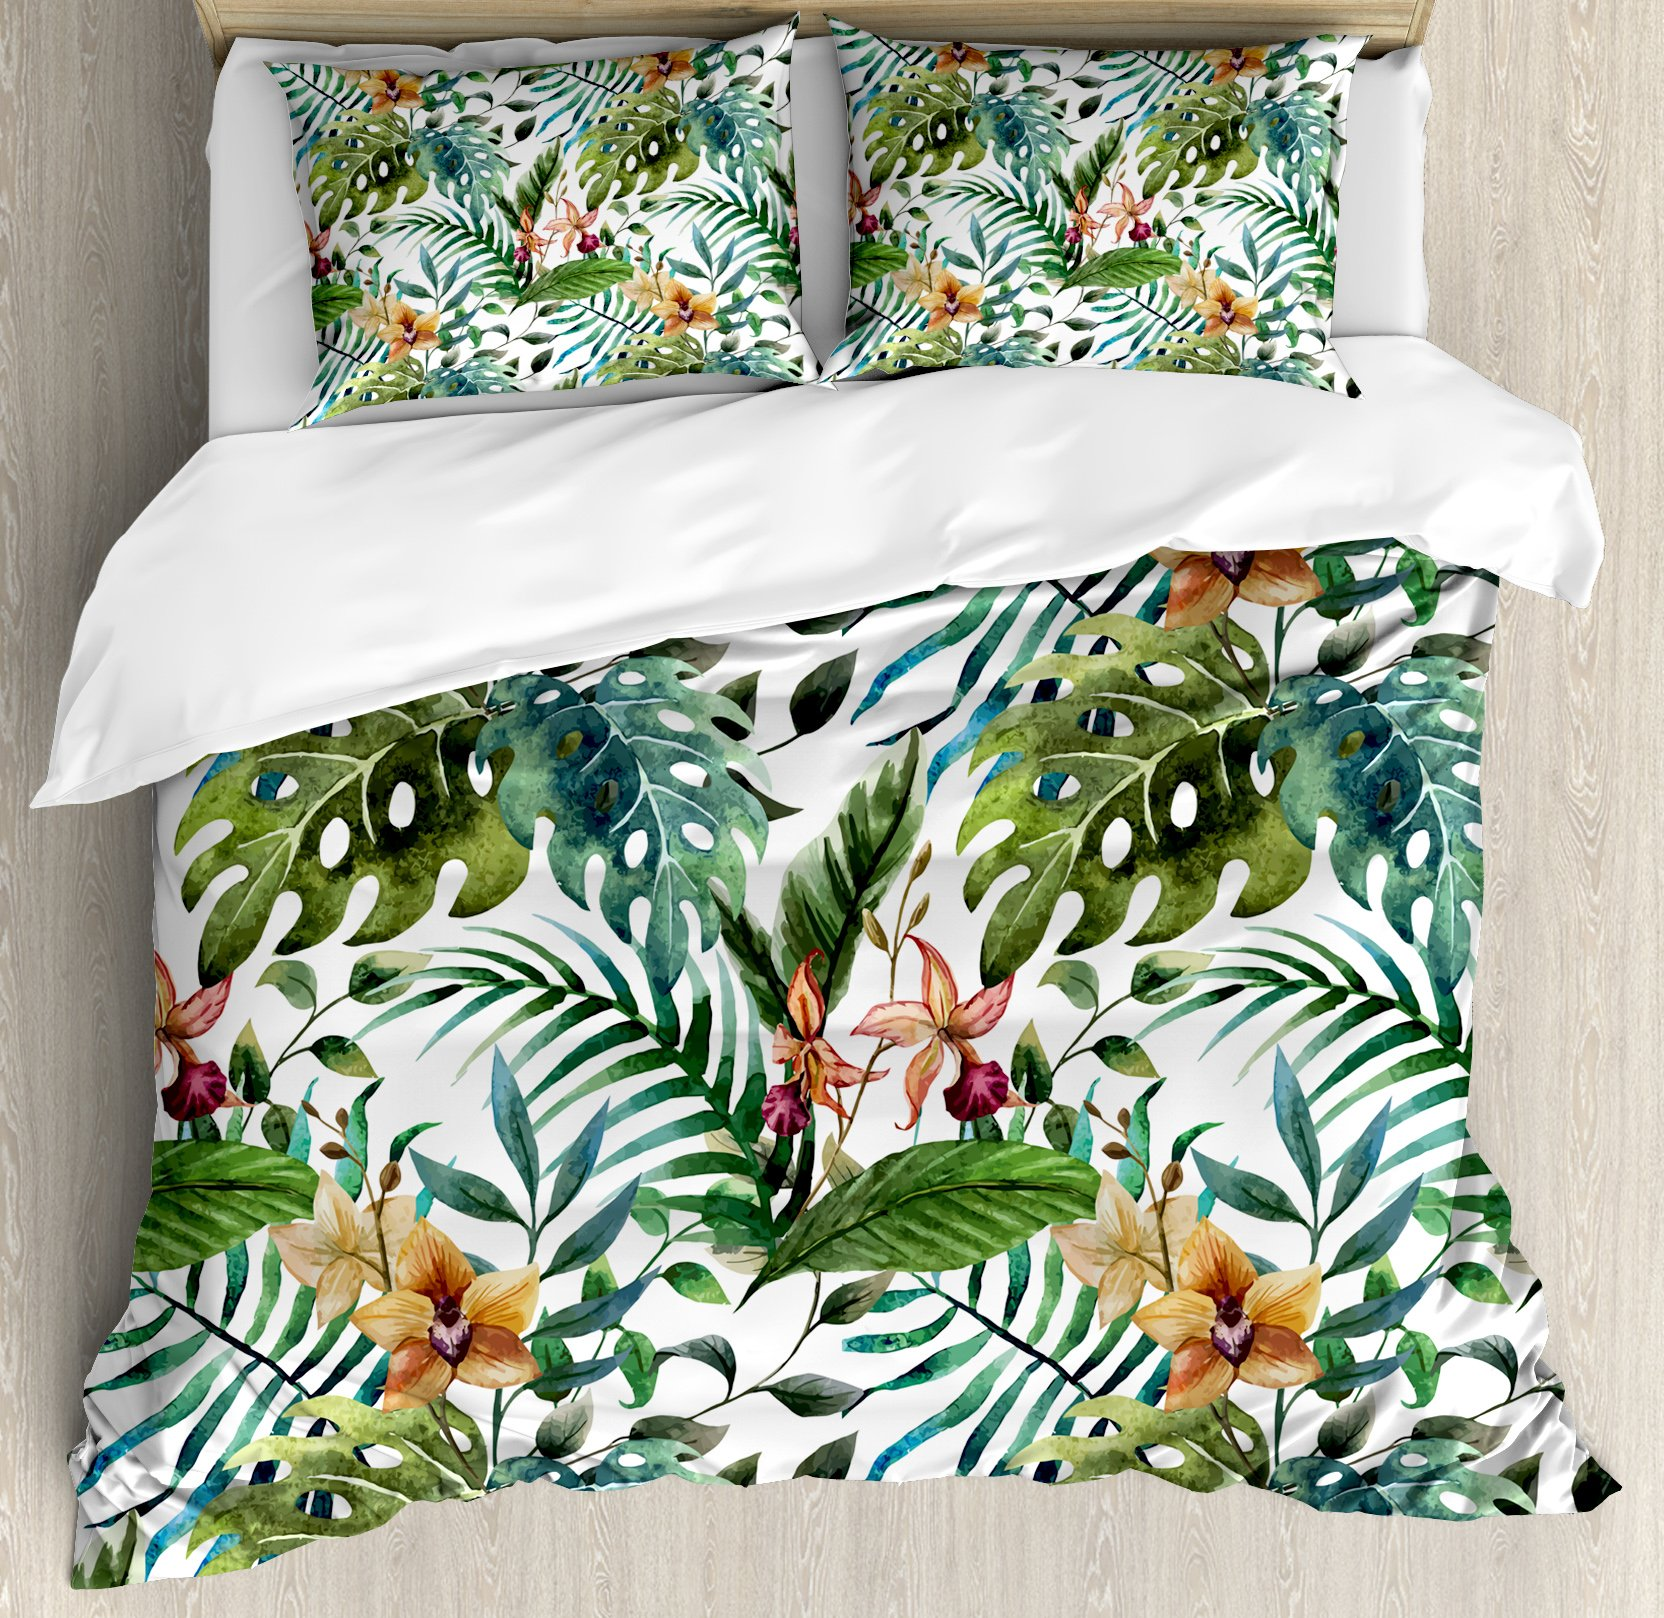 Leaf Duvet Cover Set Queen Size by Ambesonne, Vintage Retro 60s Seem Banana Palm Tree Leaves Flowers Hibiscus, Decorative 3 Piece Bedding Set with 2 Pillow Shams, Light Caramel Burgundy and Green